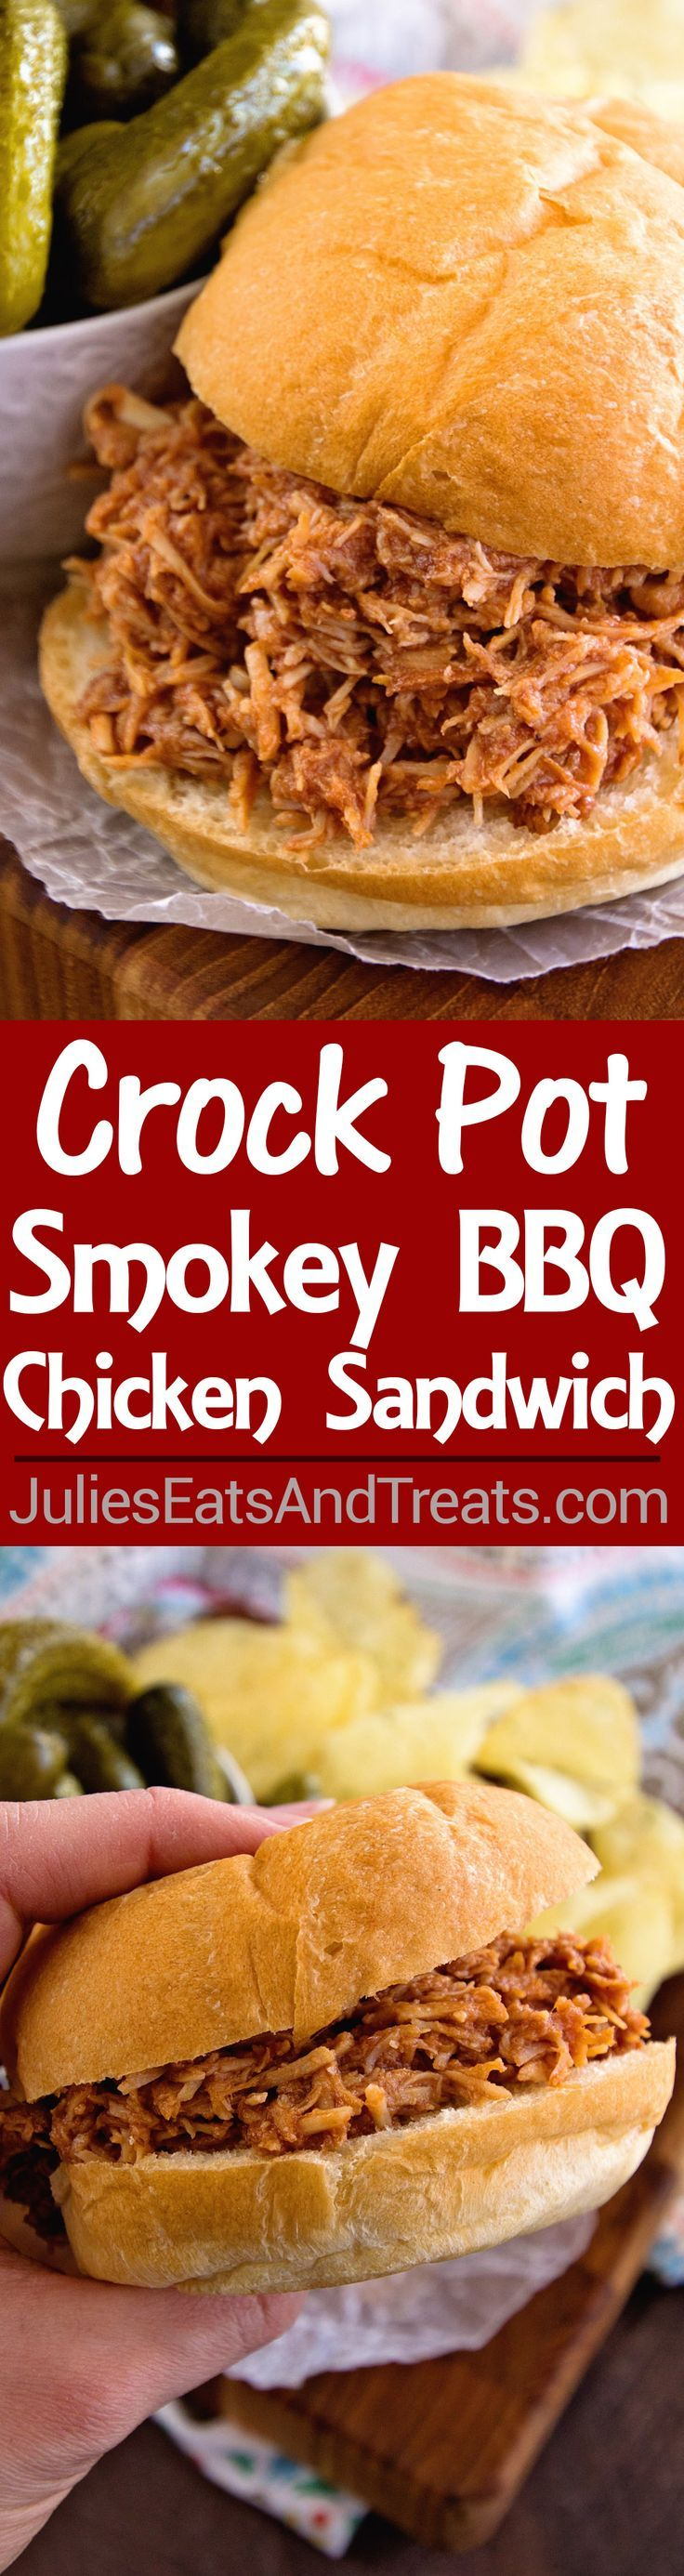 Easy, Shredded Chicken Sandwiches in Your Slow Cooker! Tender, Moist and Delicious Flavored with Liquid Smoke and Smothered in Barbecue Sauce!